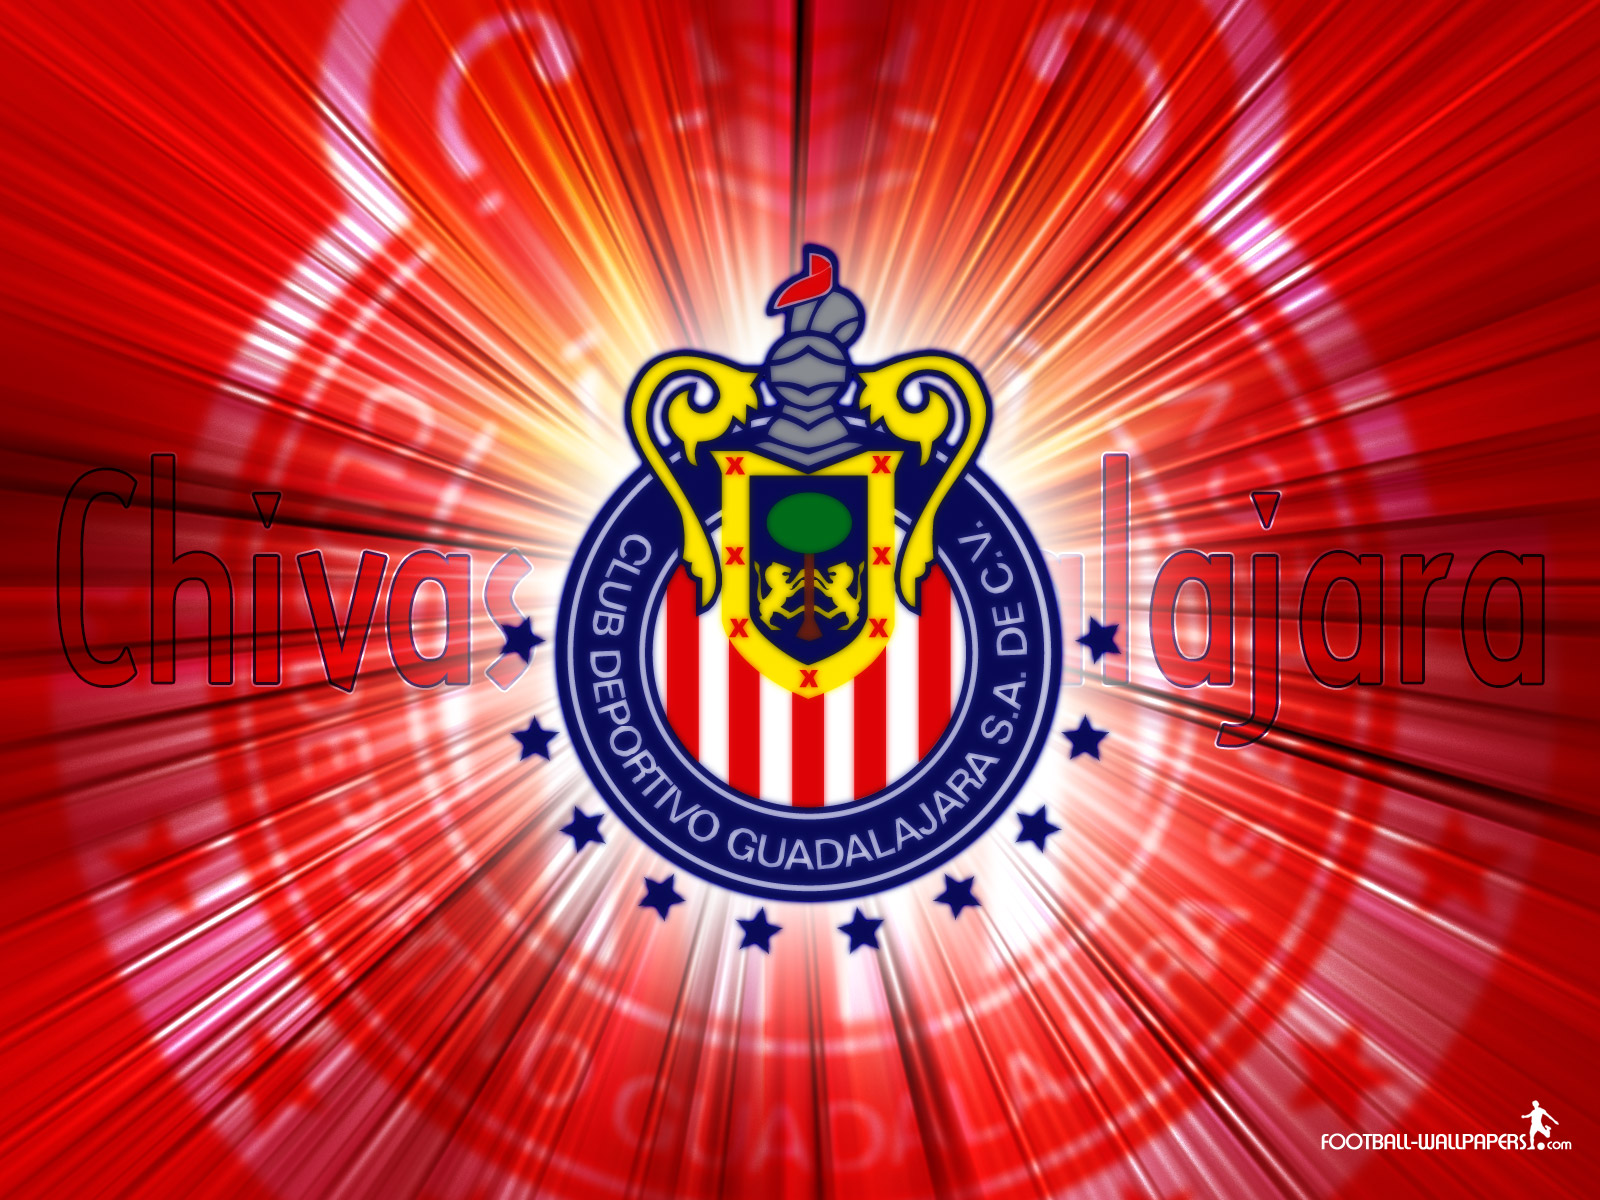 1600x1200 - C.D. Guadalajara Wallpapers 25